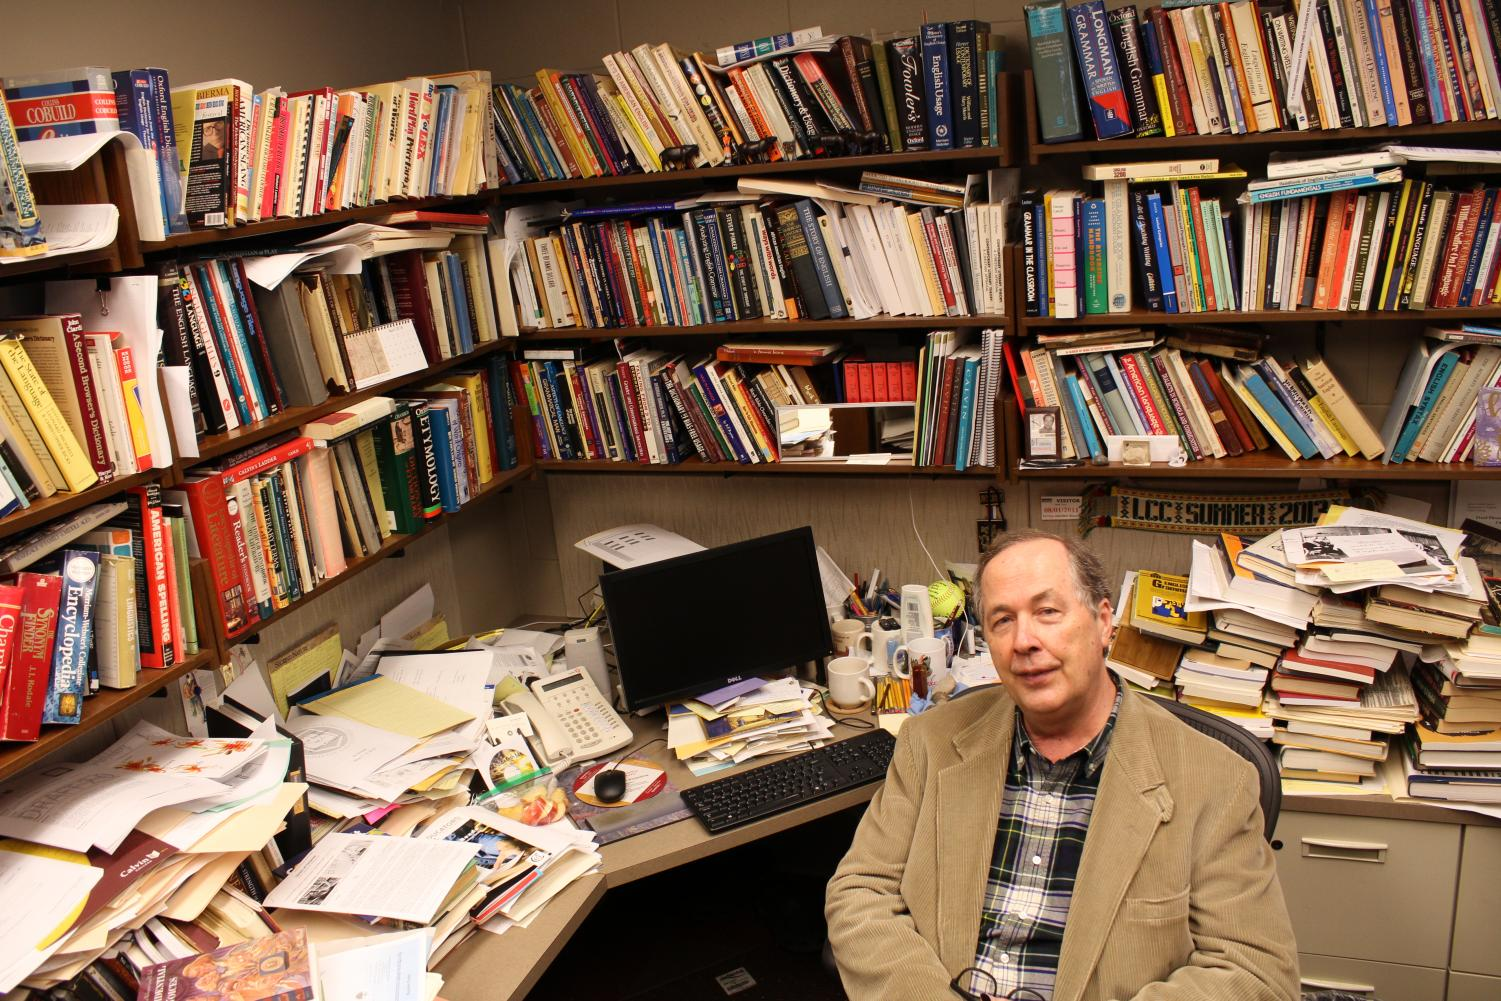 Professor Vanden Bosch retires this May and will leave a legacy of using the power of language databases to research patterns. Photo by David Fitch.